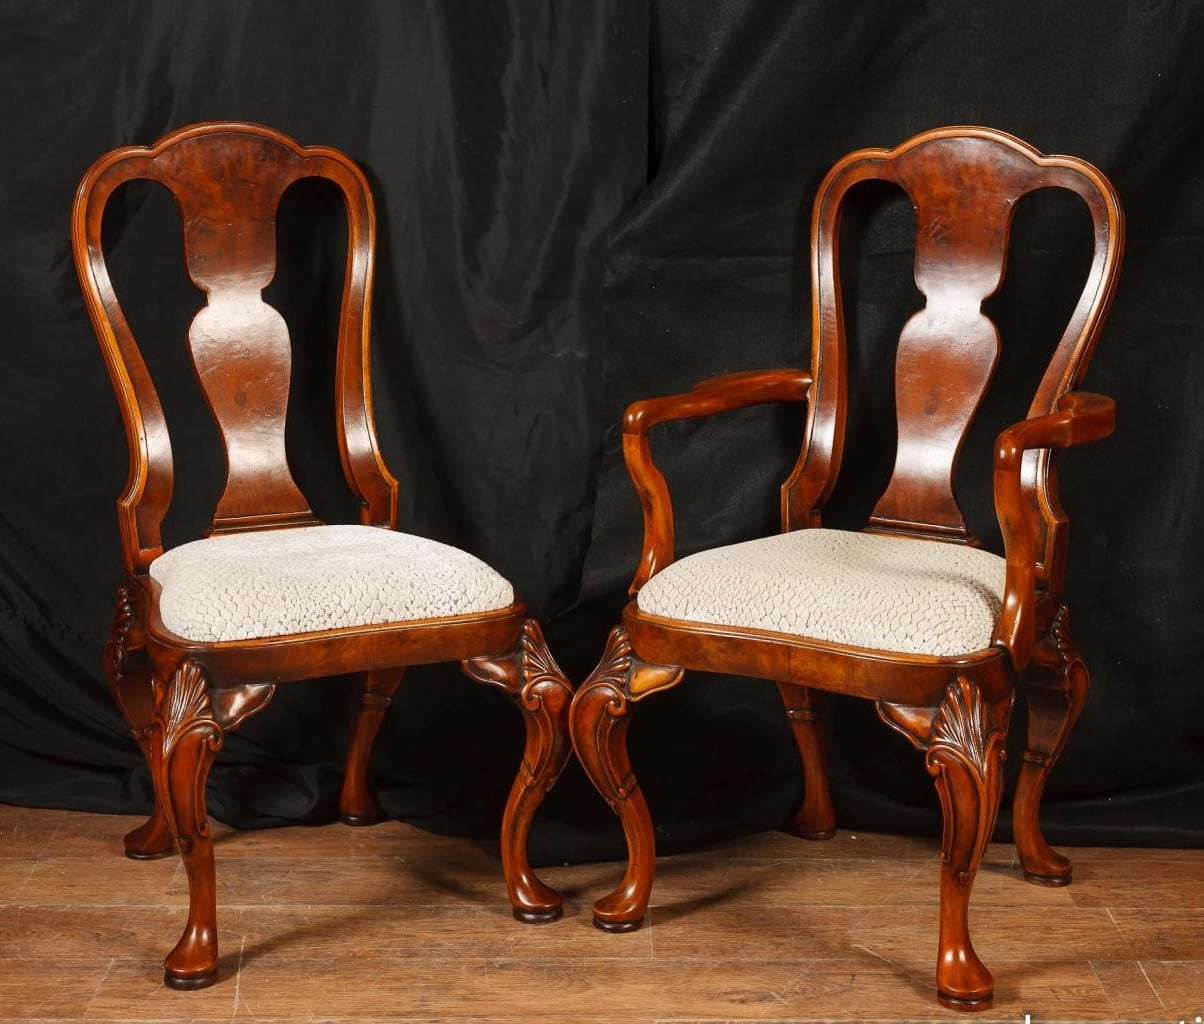 Queen Chairs Iconic Antique Chair Design Part 1